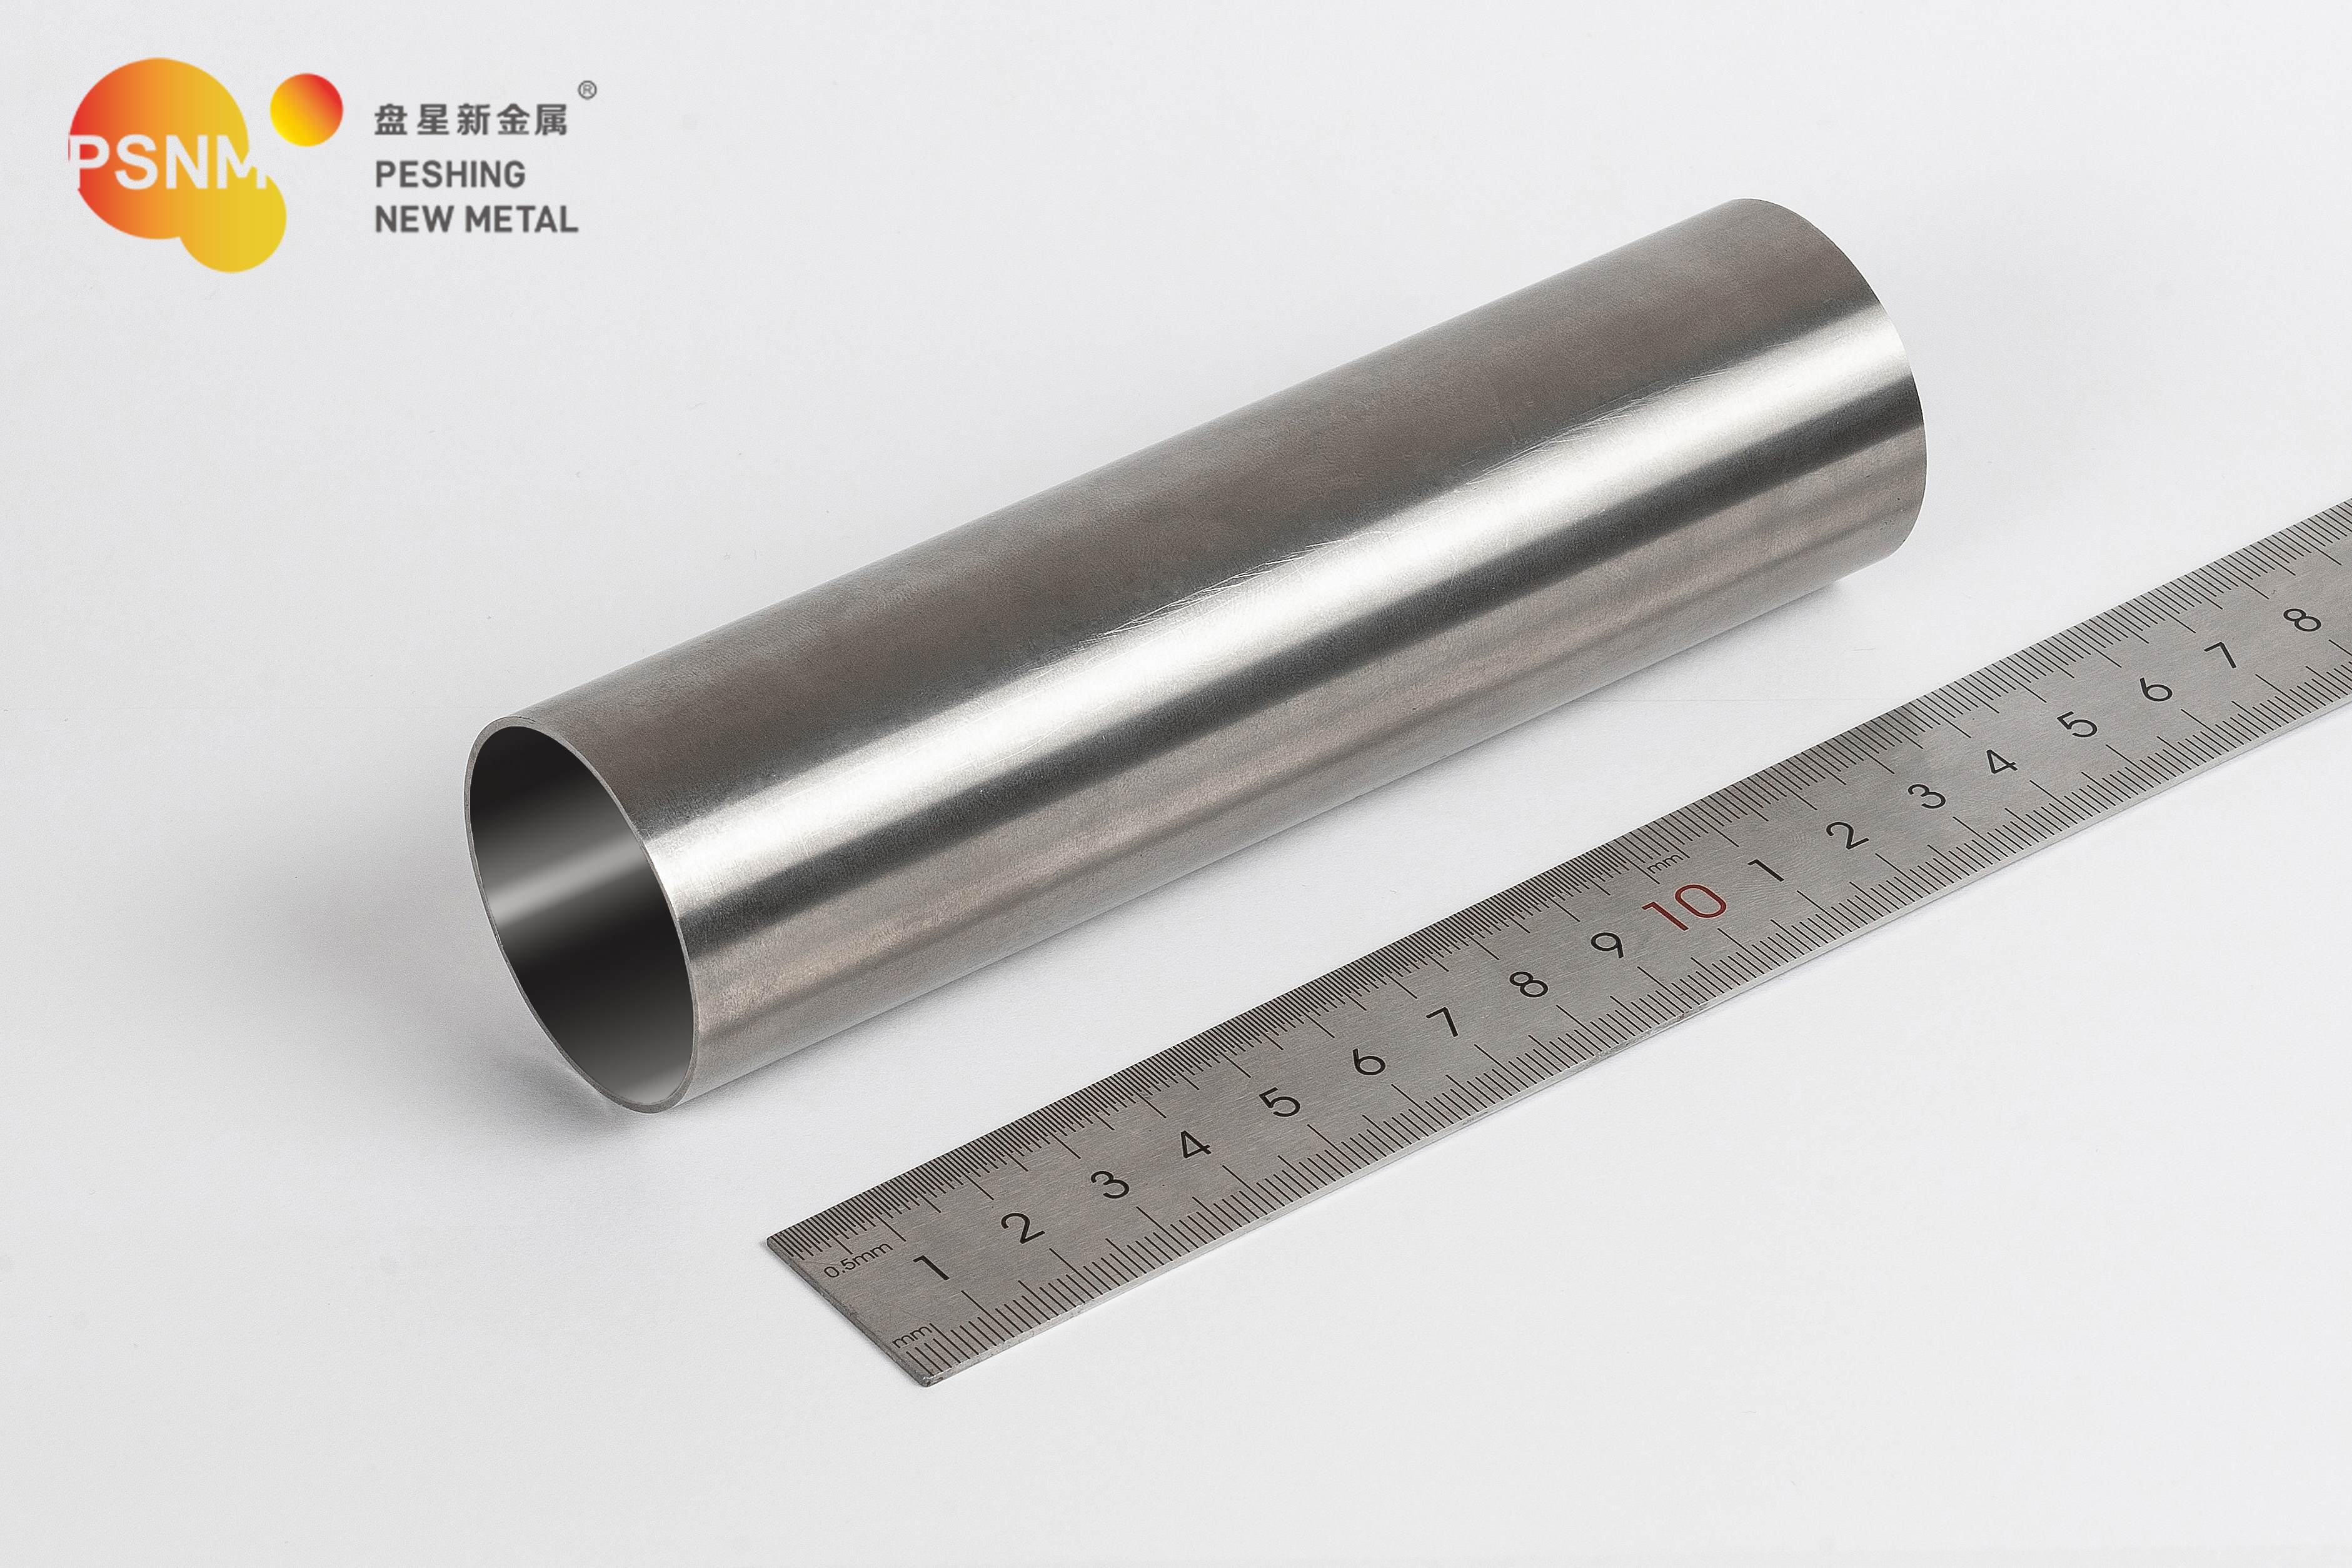 Peshing New Metal successfully developed amorphous alloy tube